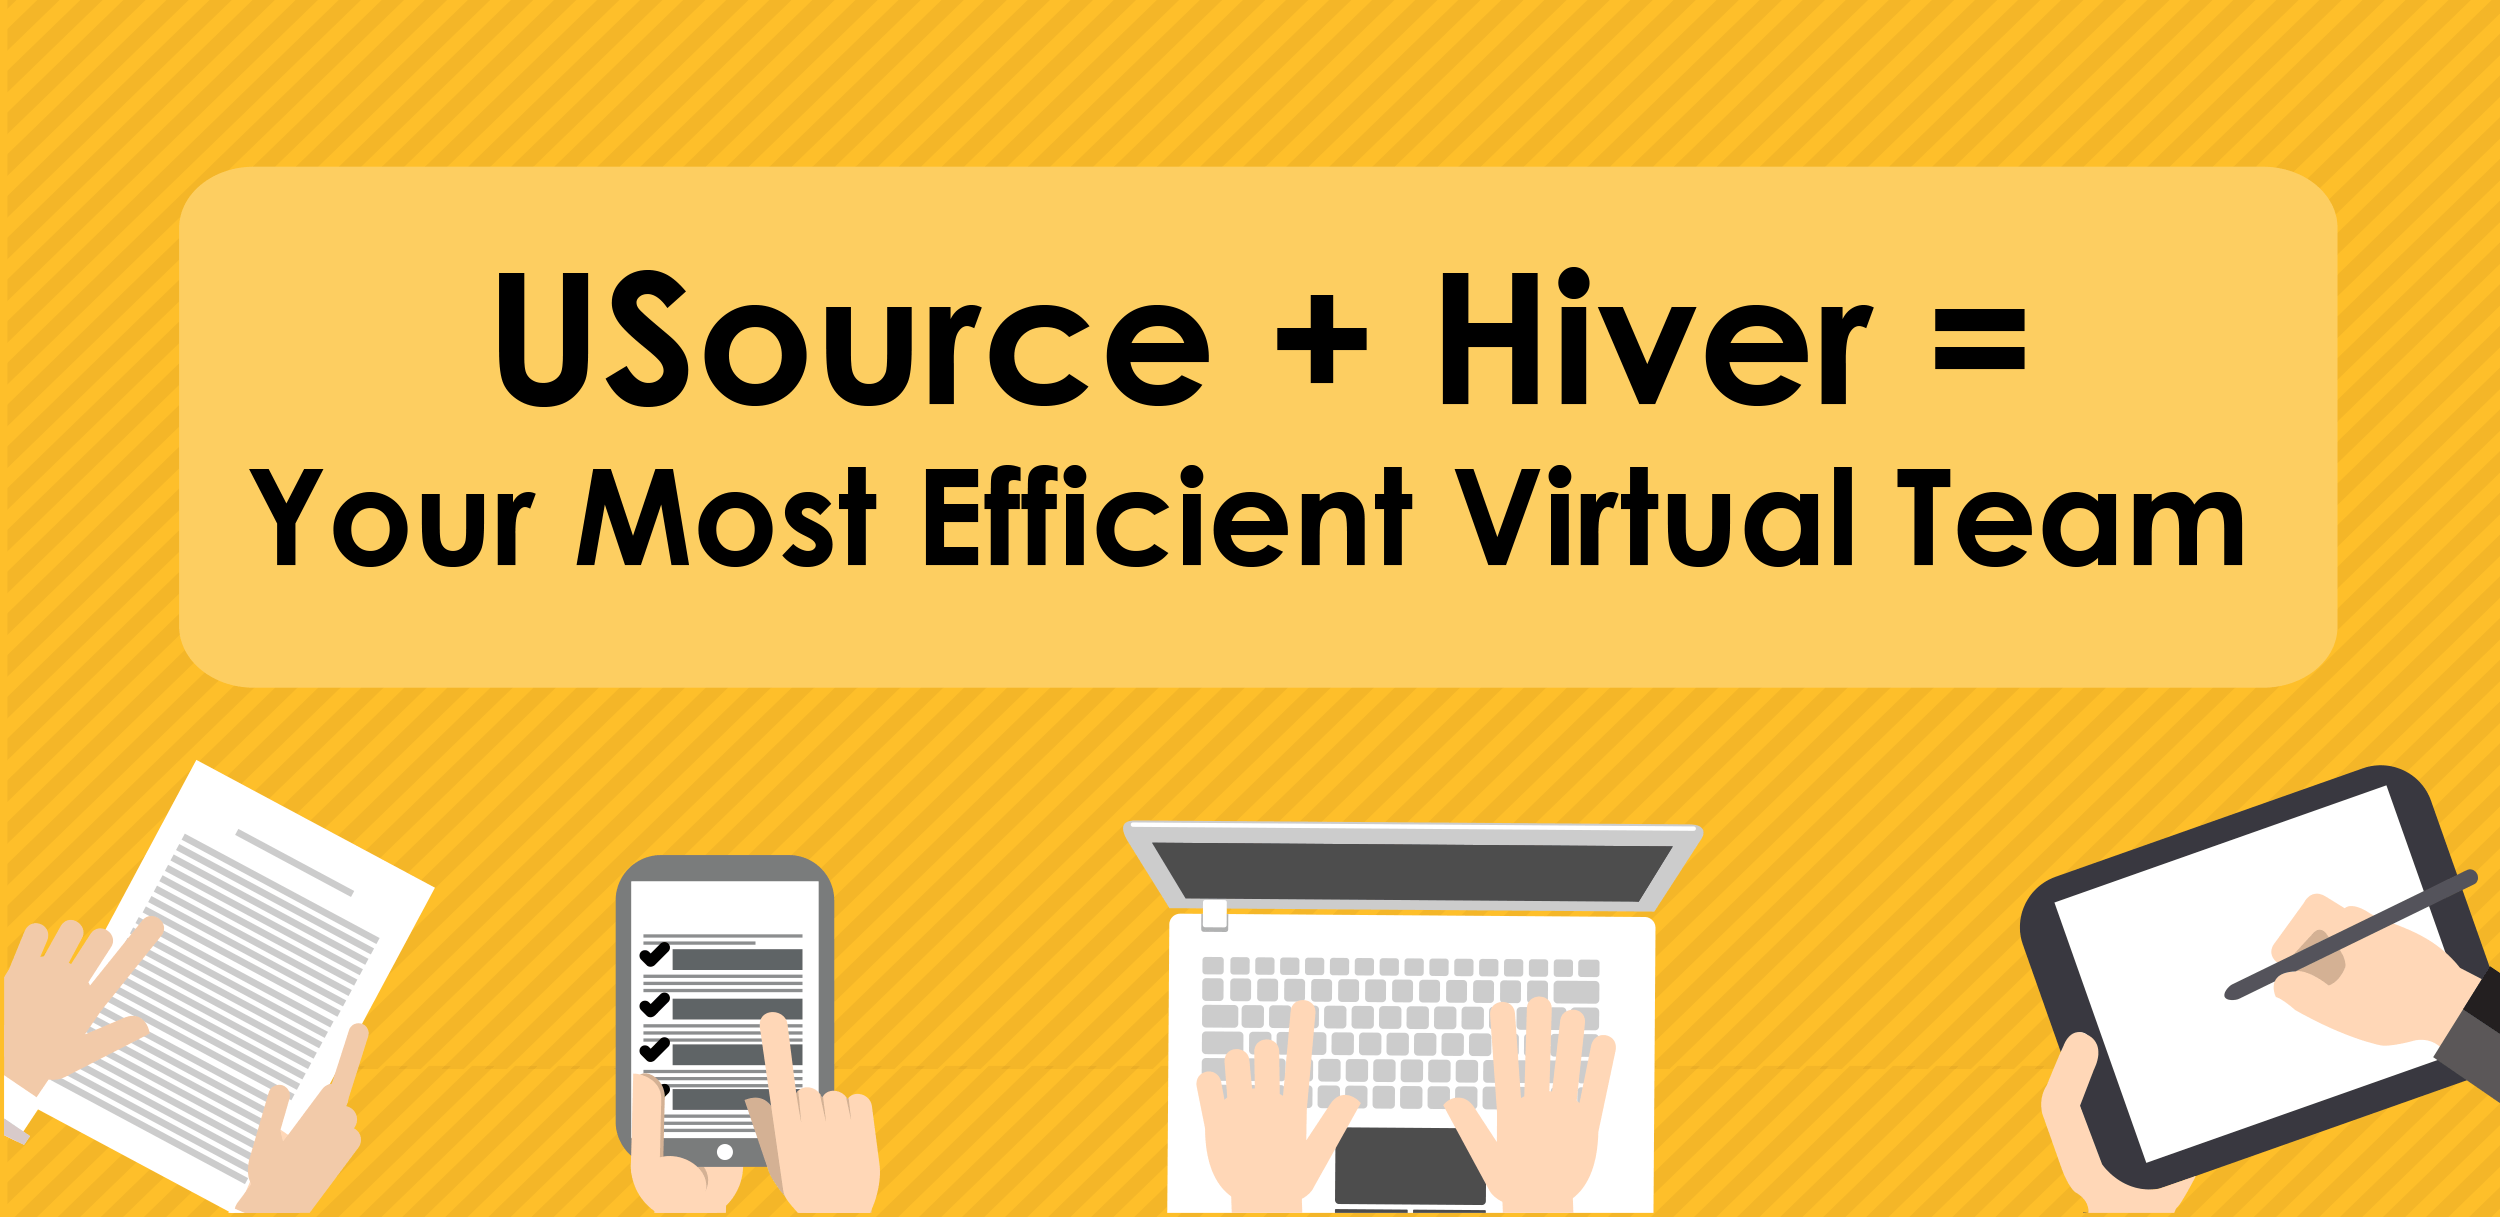 USource Virtual Teams using Hiver